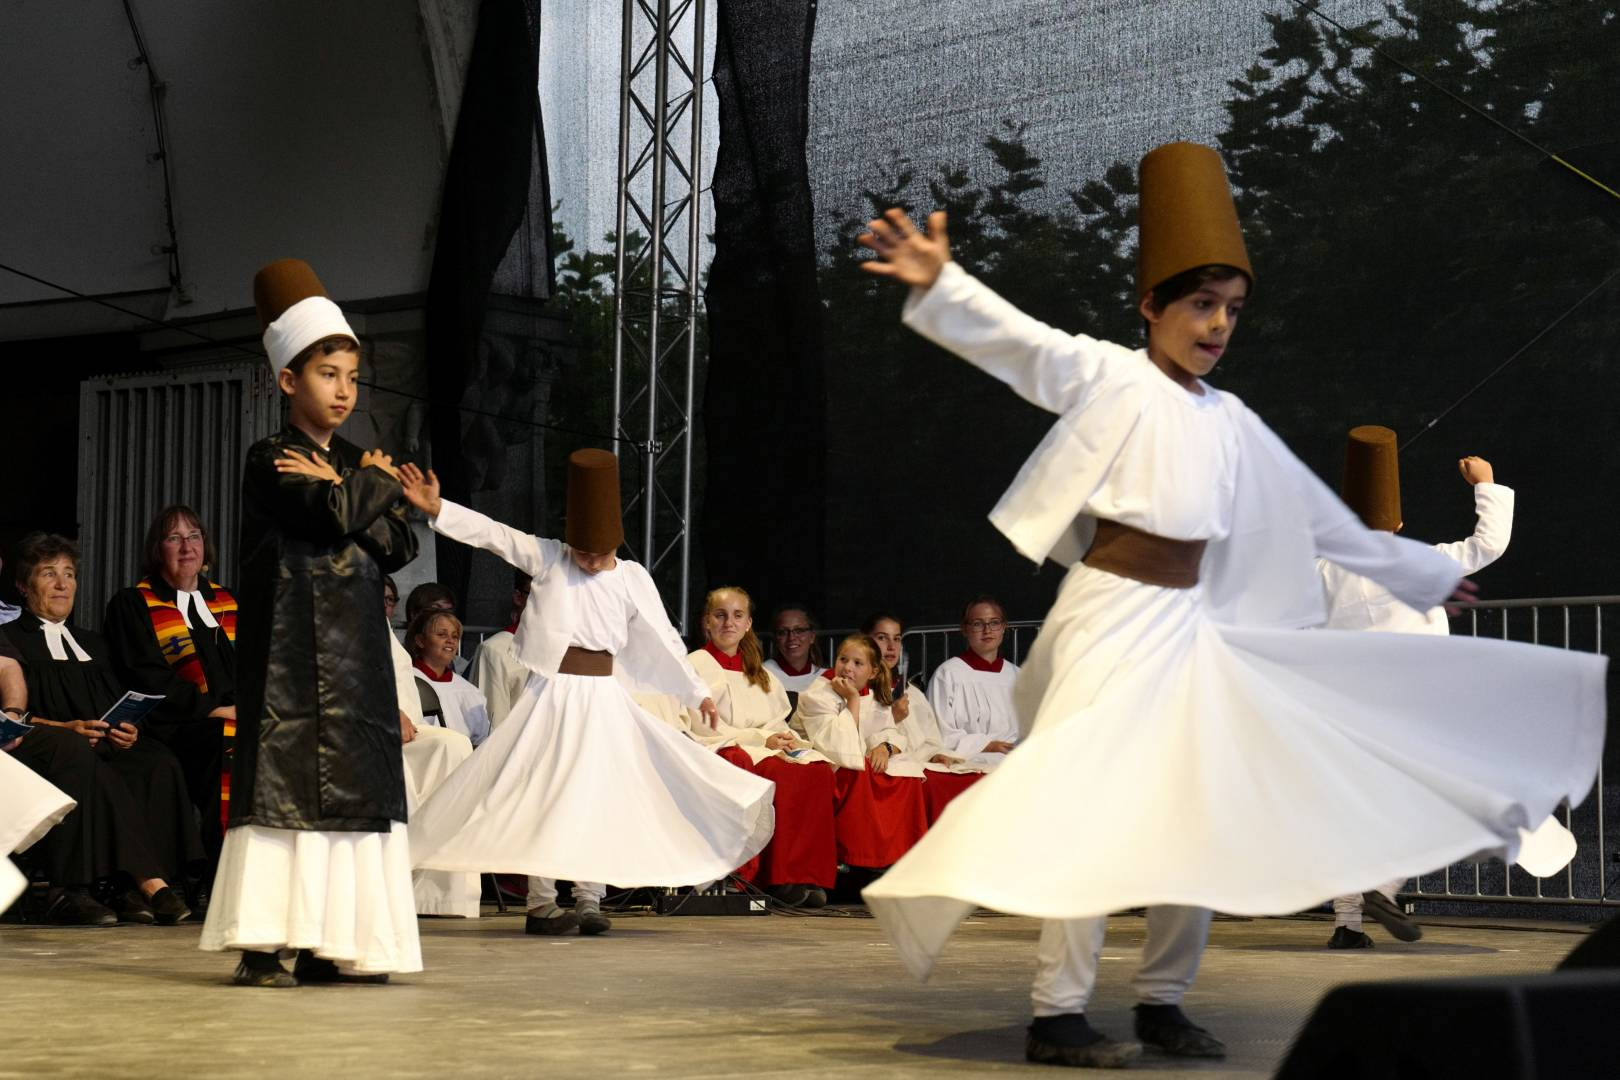 A multi-faith festival in Konstanz. Young boys froth the Turksih community perform a Dervish dance in front of the representatives of the Christian Churches. (Leica SL Vario-Elmarit SL 24-90; 69 mm; 1/125 sec. f/5.6; ISO 2500)